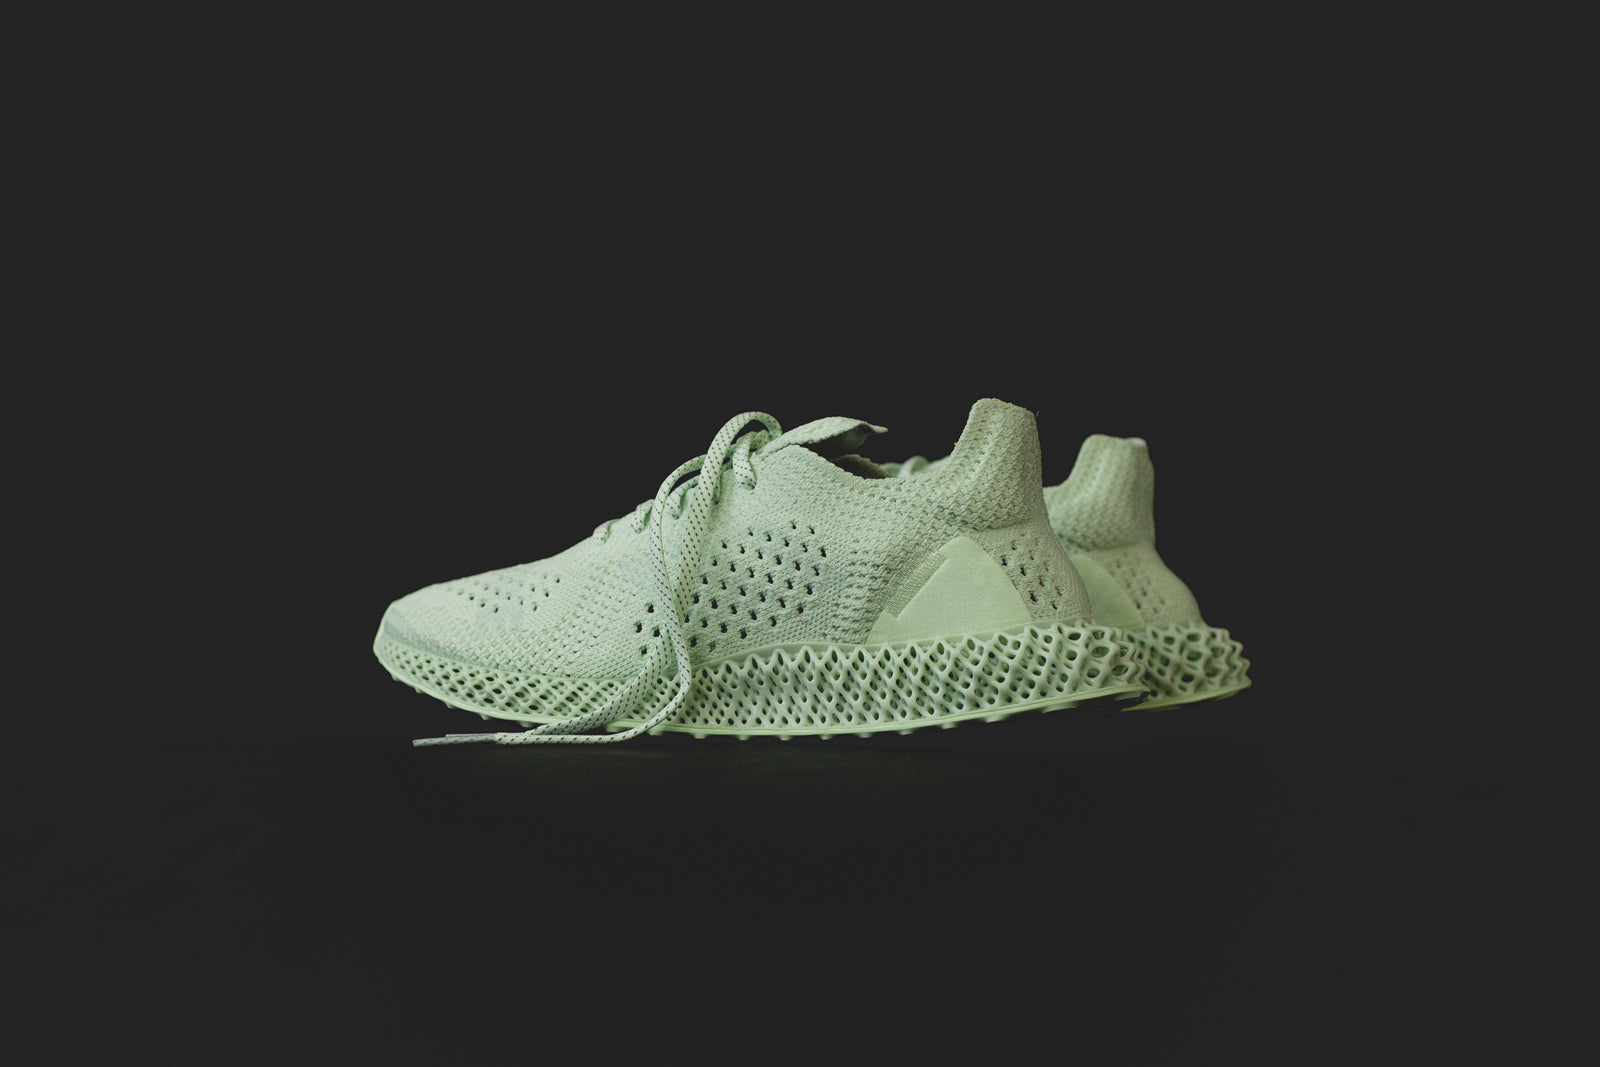 official photos 1dc1b a3249 Daniel Arsham x adidas Future Runner 4D - Kith Exclusive Launch